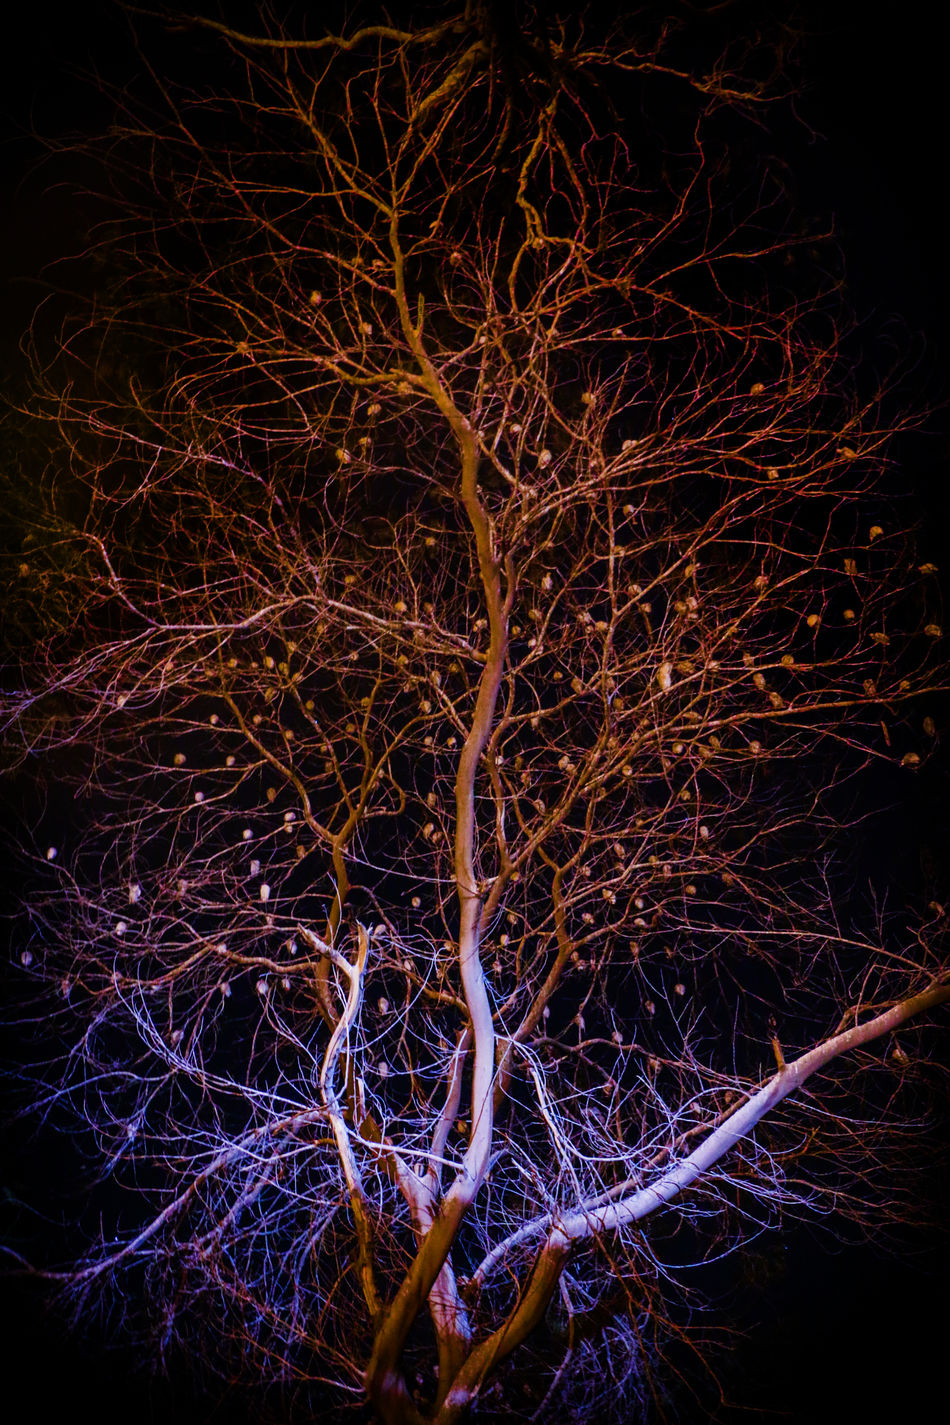 Abstract Backgrounds Bird Birds Branch Change Close-up Dead Plant Dry Focus On Foreground Full Frame Glowing Growing Growth Leaf Mystery Nature No People Outdoors Plant Sleeping Bird Stem Tree Tree Trunk Twig